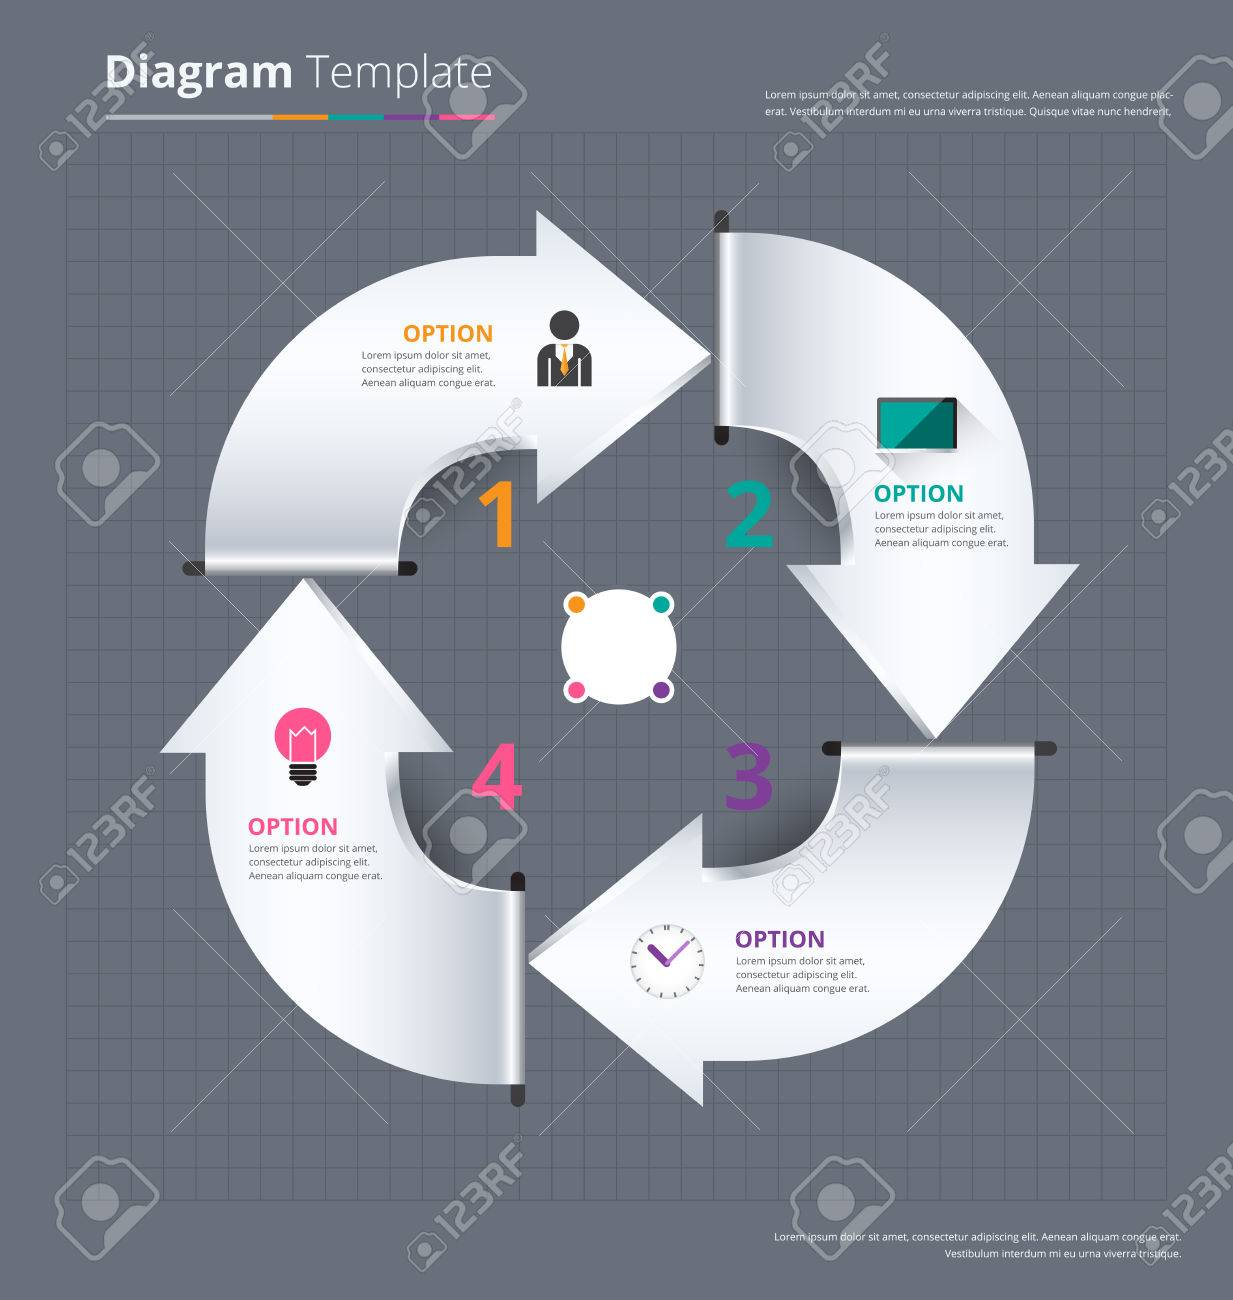 Diagram template organization chart template flow template blank diagram template organization chart template flow template blank diagram for replace text ccuart Image collections